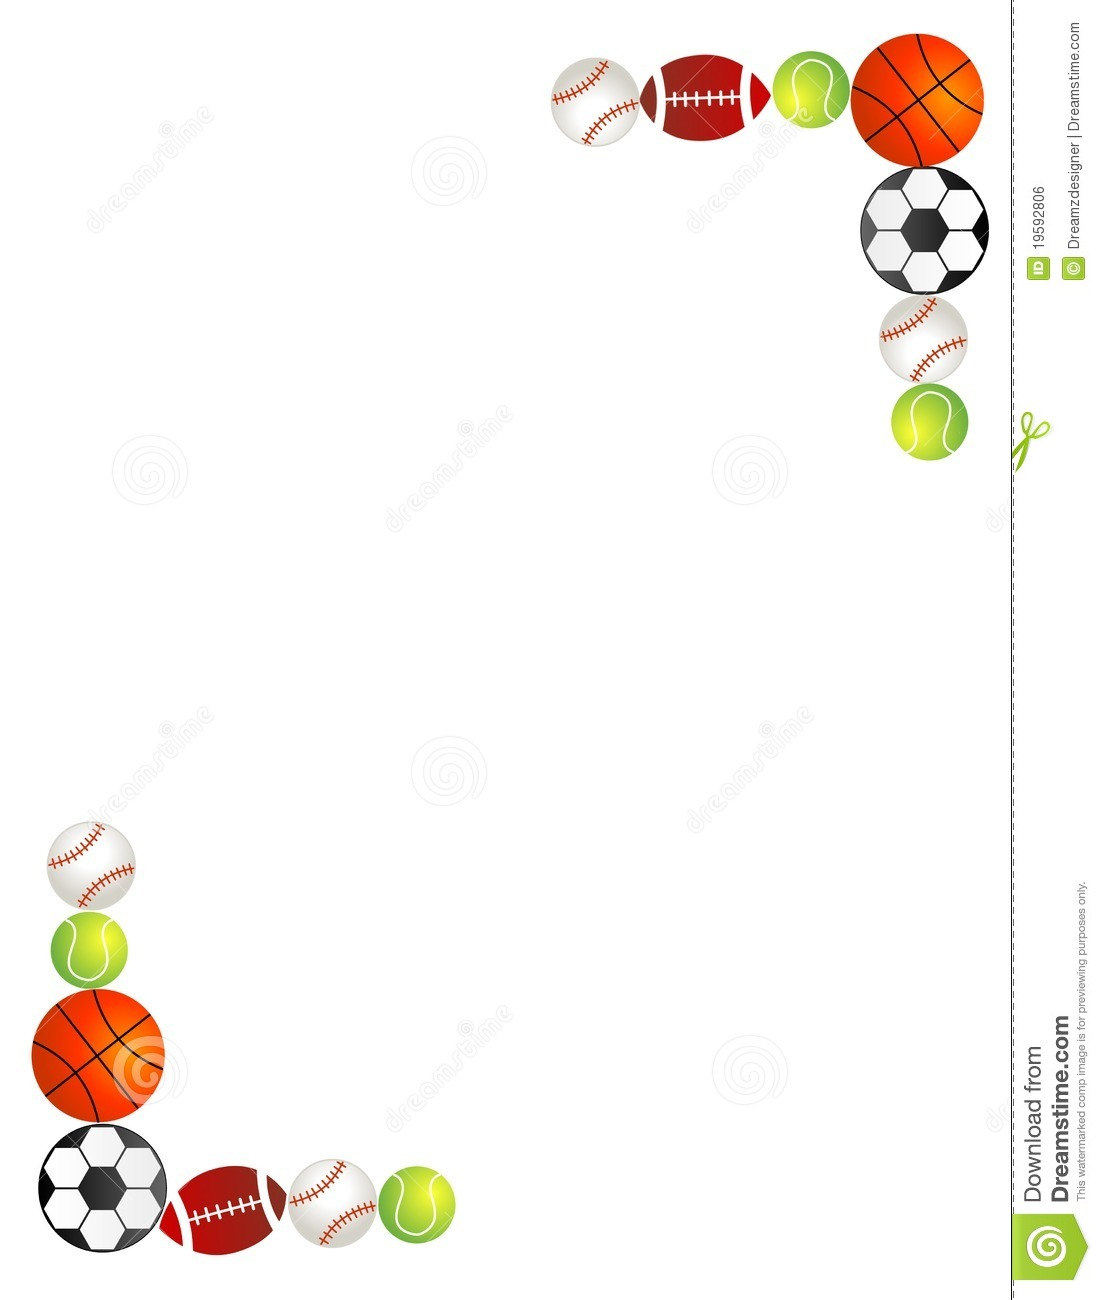 Sport balls border / frame stock vector. Illustration of artwork ...